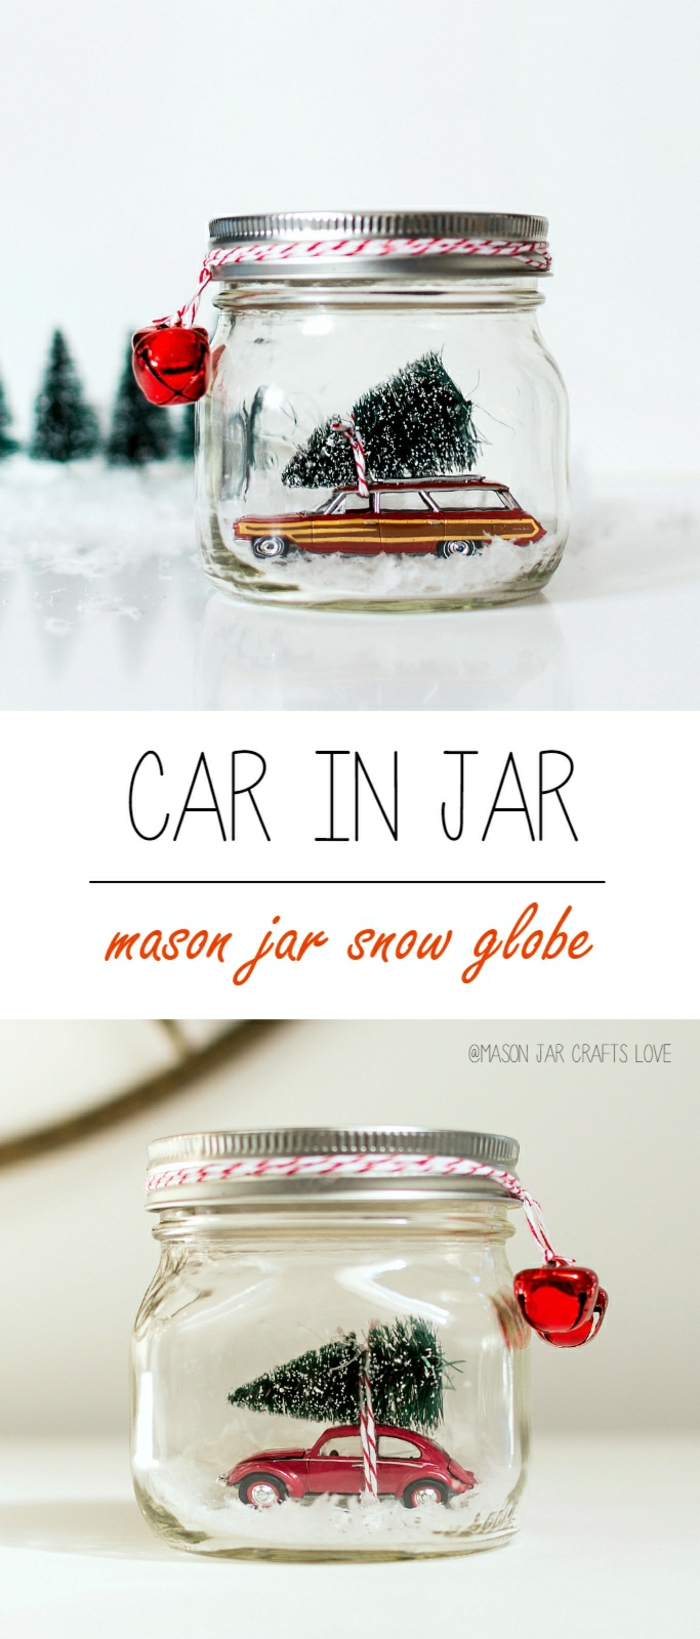 diy gift ideas, two jars filled with fake snow and red retro car toys, with Christmas trees tied to the cars, red and white string tied around the jar lids, small red bells